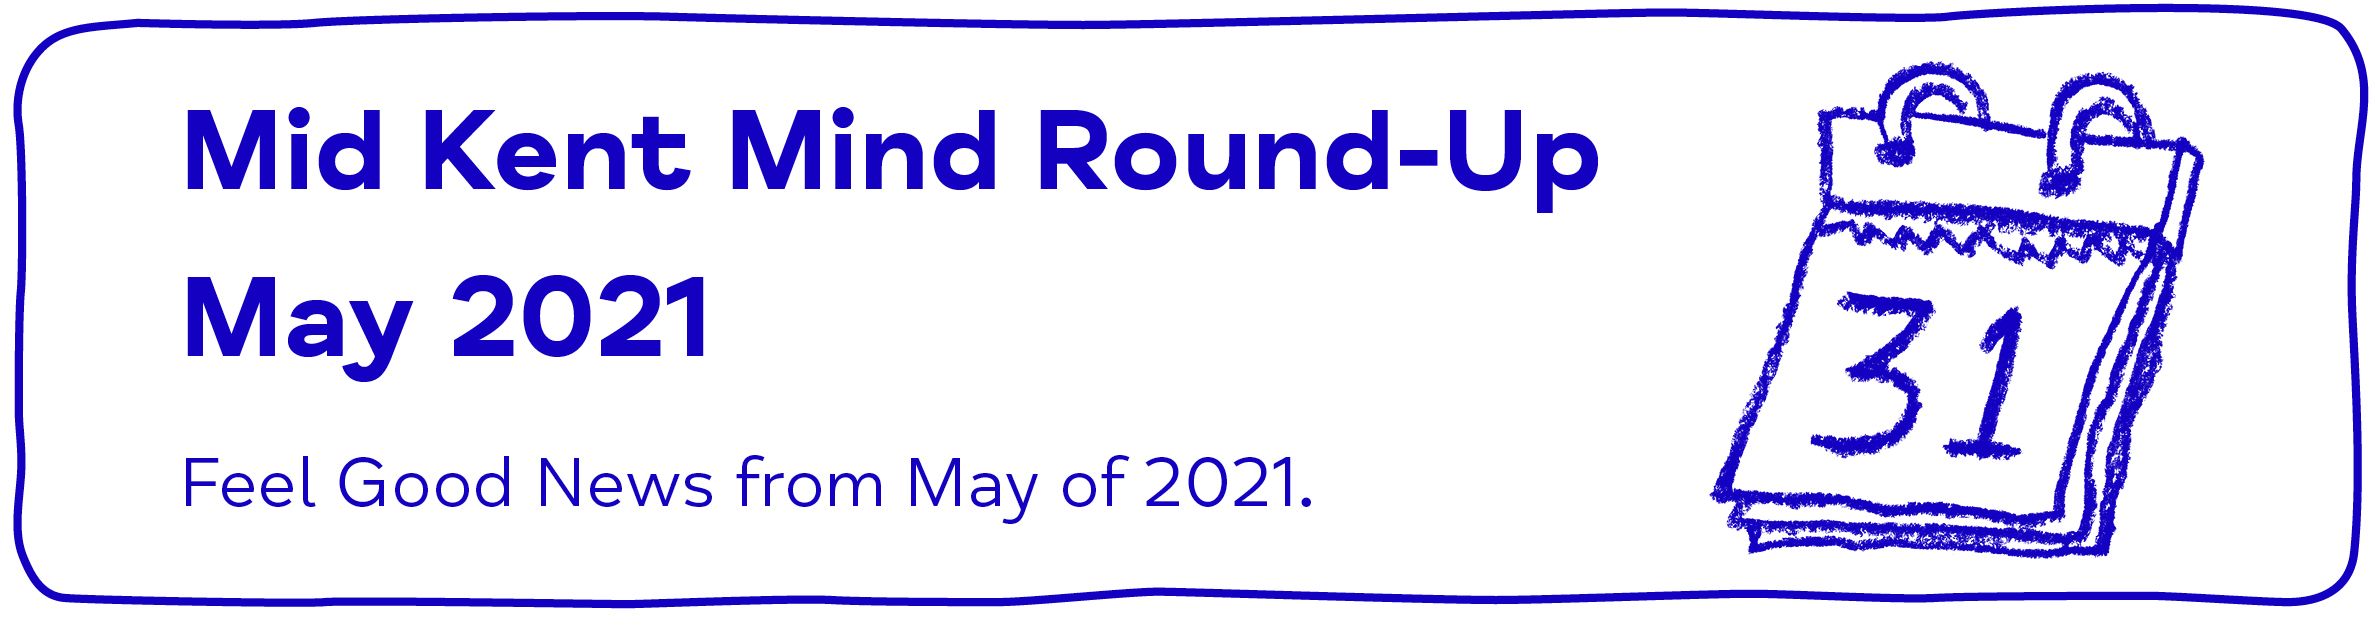 Mid Kent Mind Round-Up May 2021 Feel Good News from May of 2021 - Mid Kent Mind Newsletter - May 2021